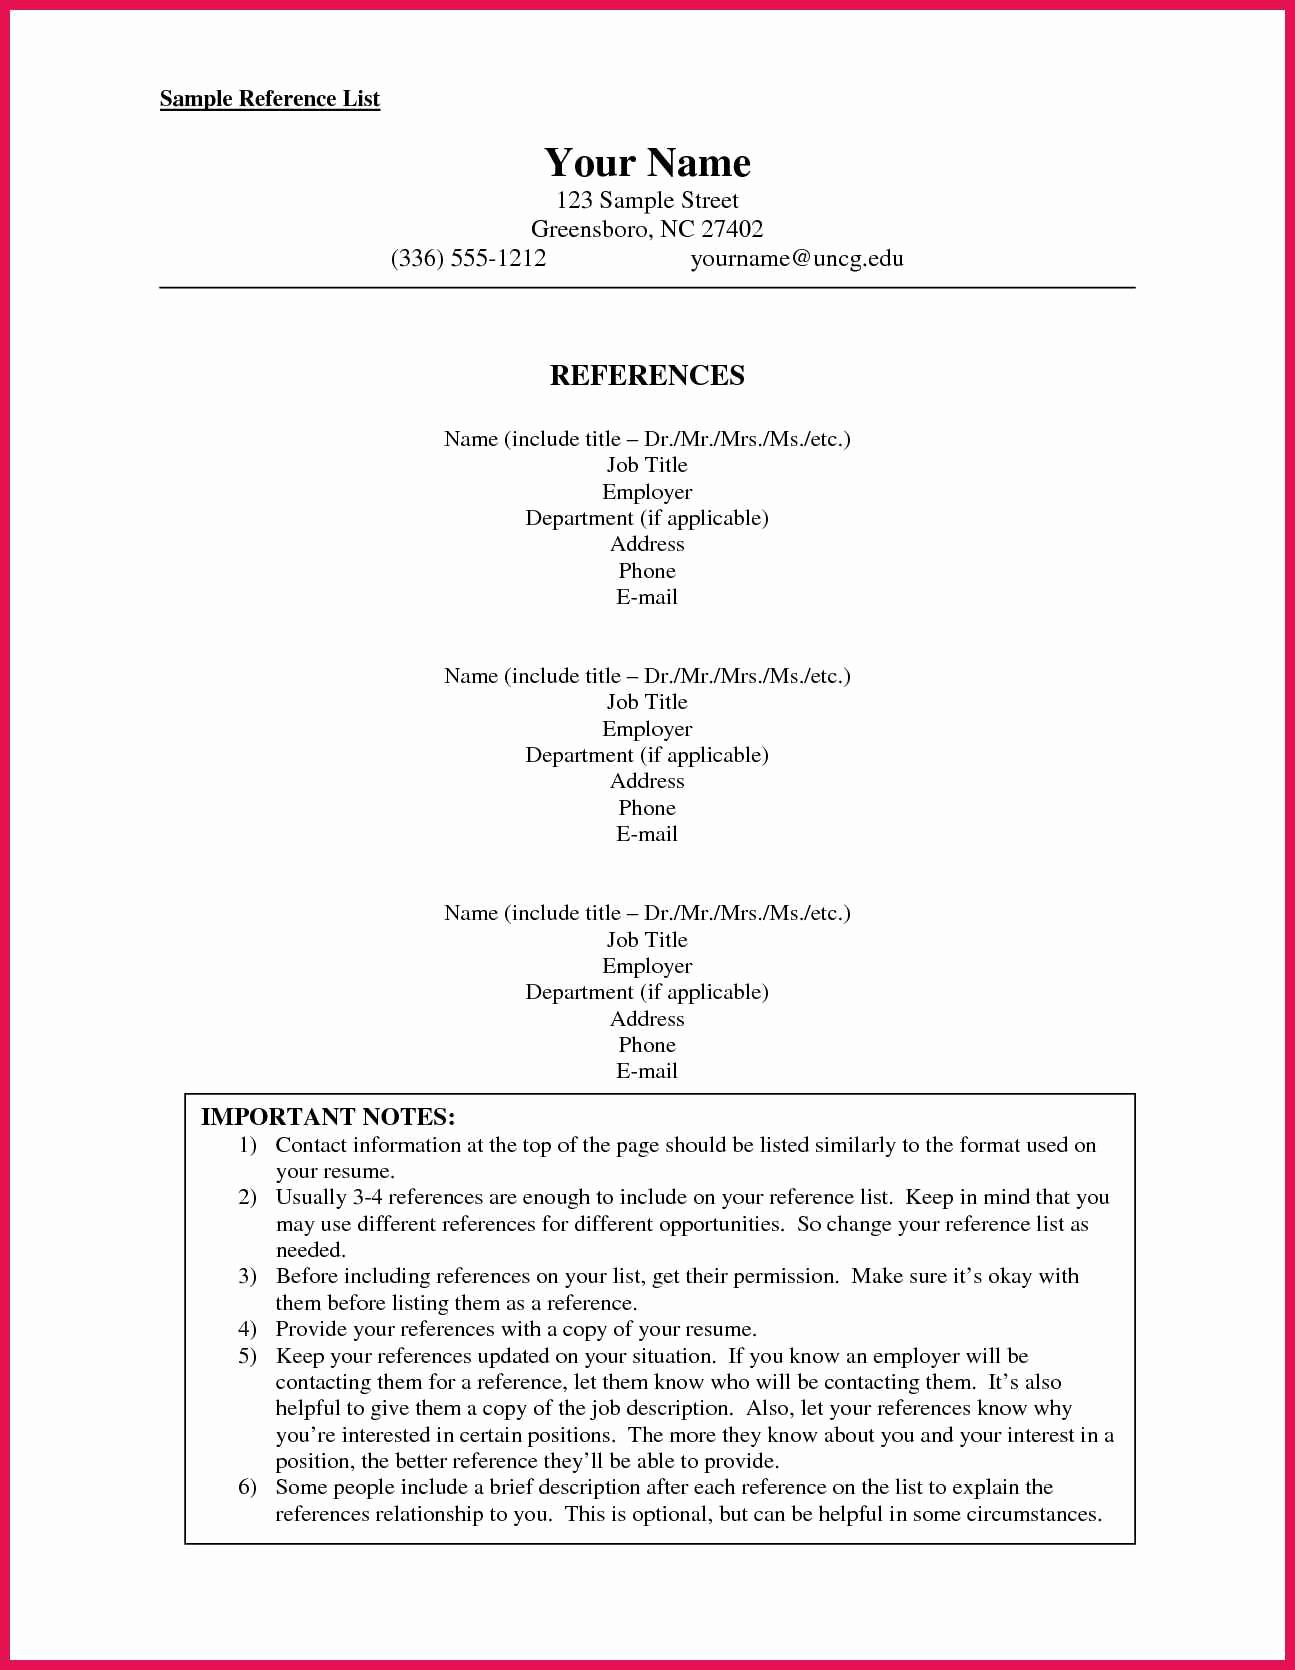 Example Of References In Resume Fresh How to format A Reference List